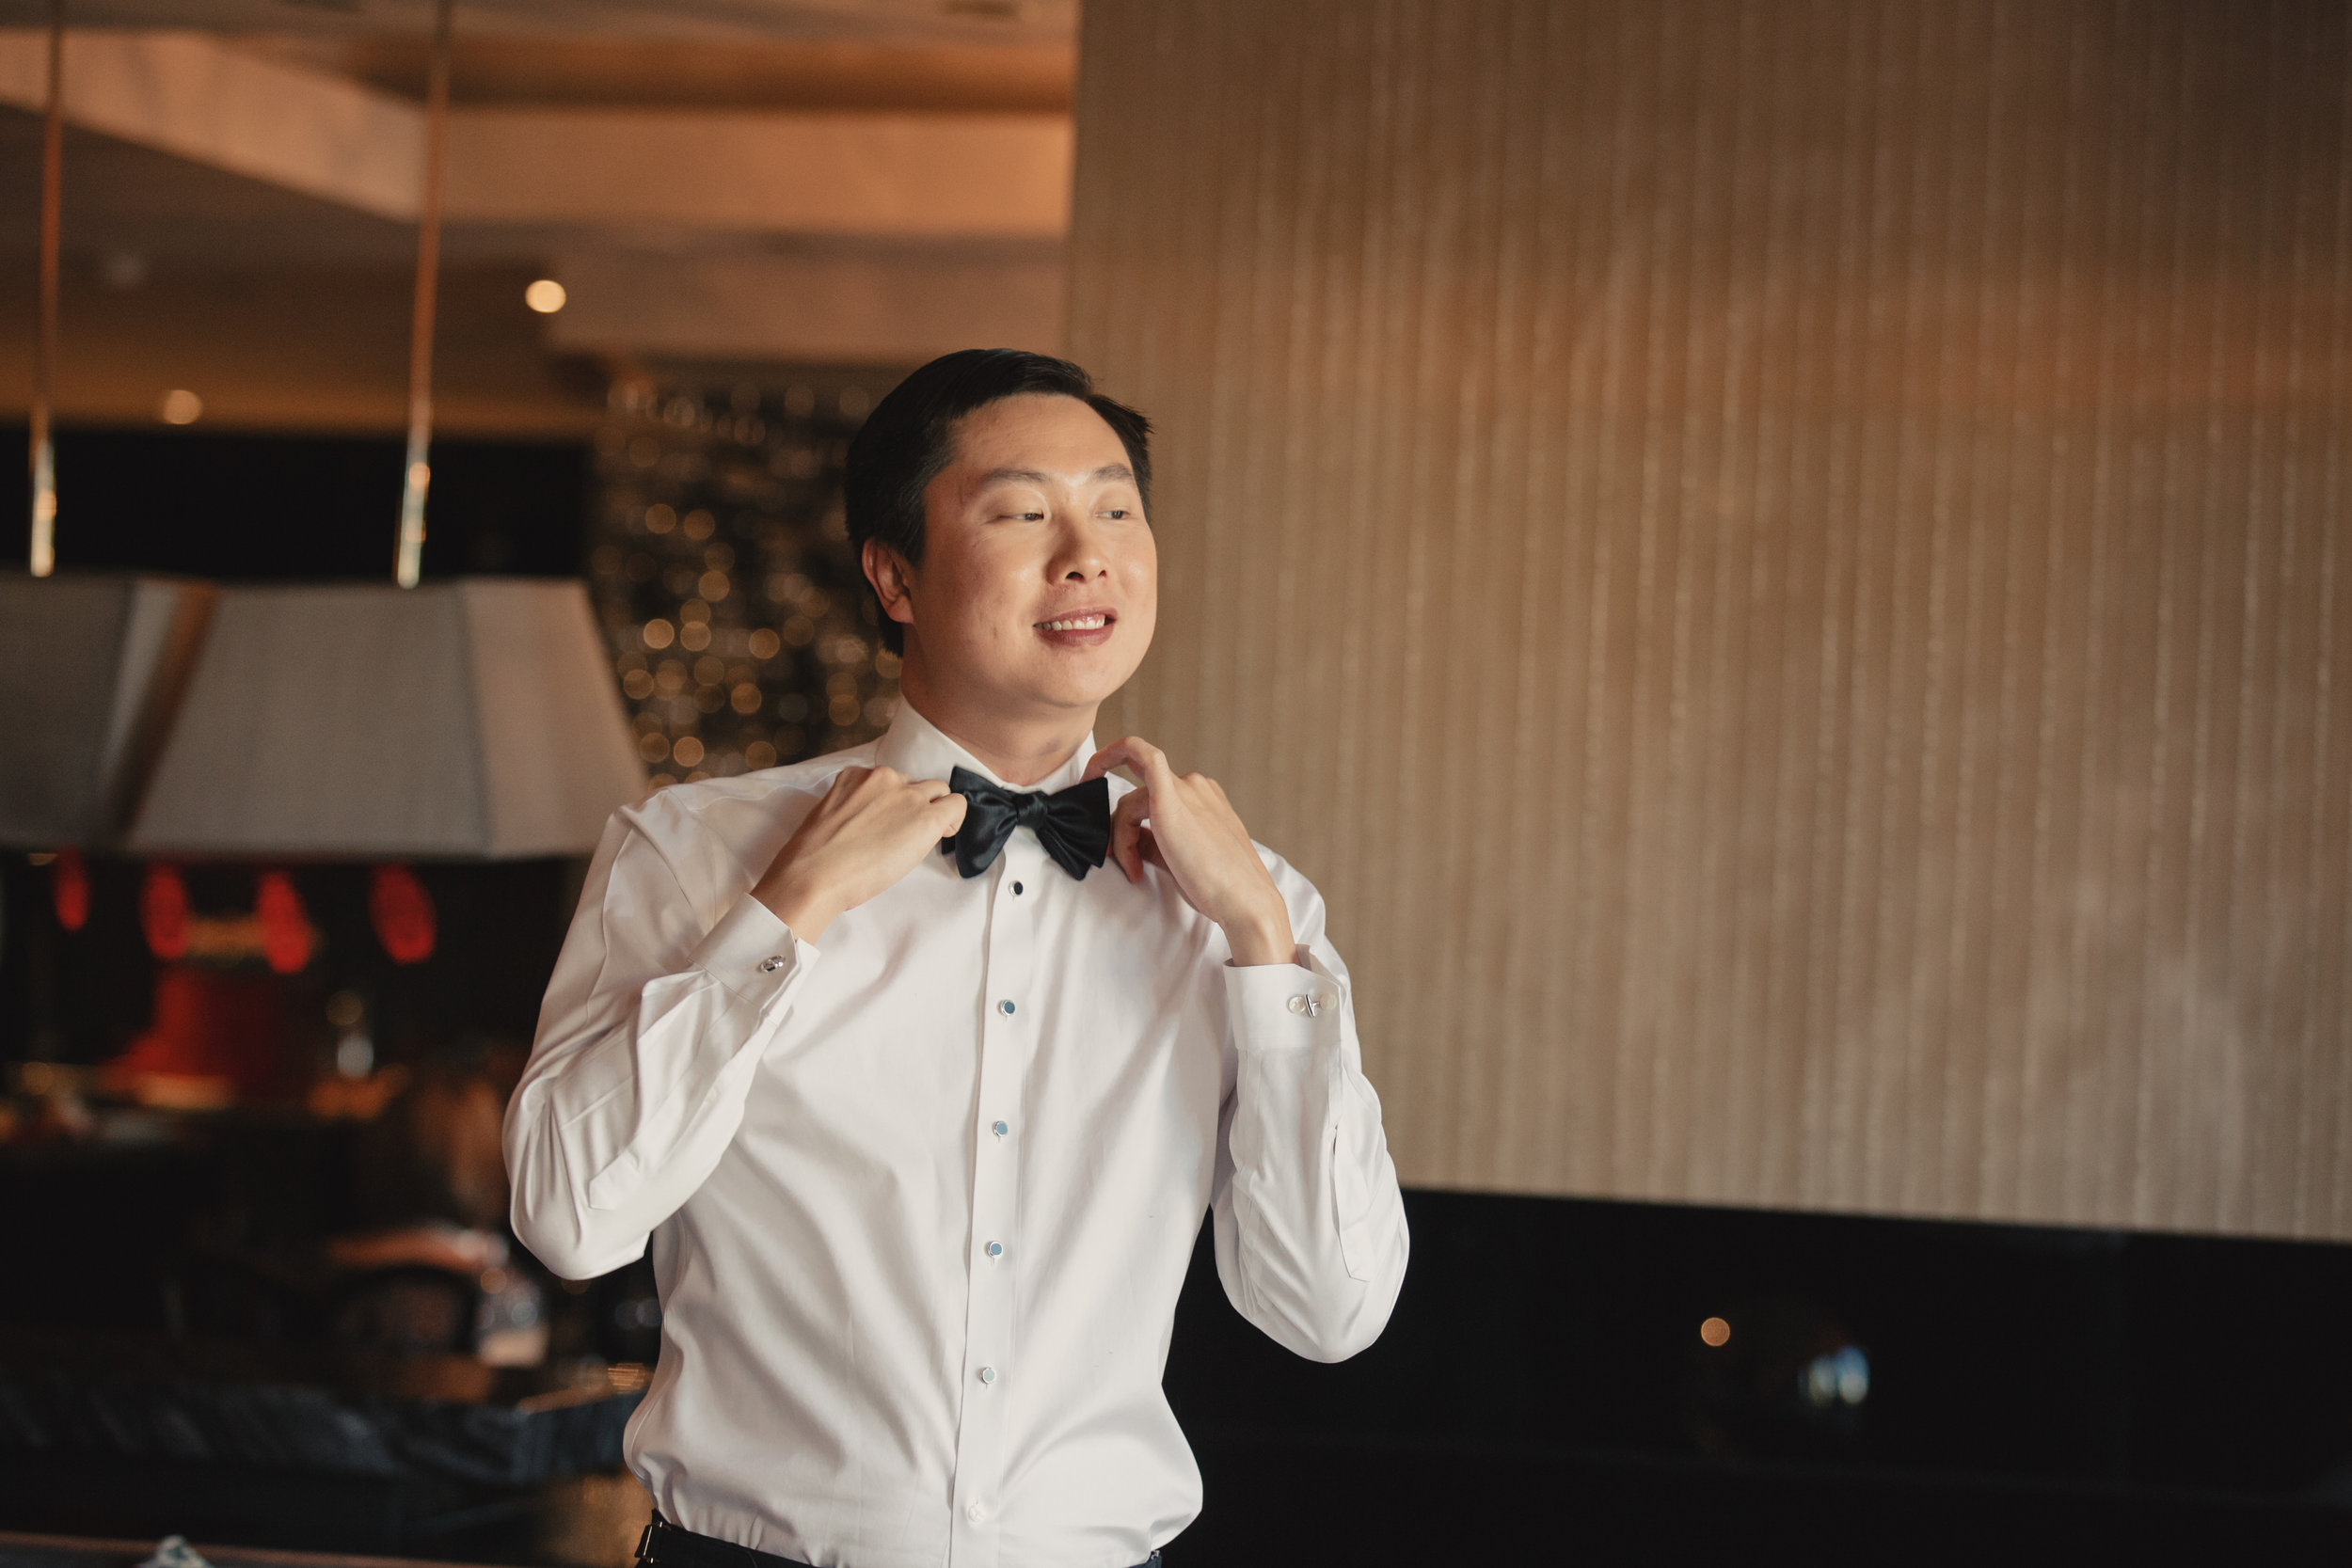 Groom putting on bowtie.Luxury wedding at the Mandarin Oriental with a color scheme of white, blush, and pops of wine red produced by Las Vegas Wedding Planner Andrea Eppolito with photos by Stephen Salazar Photography.